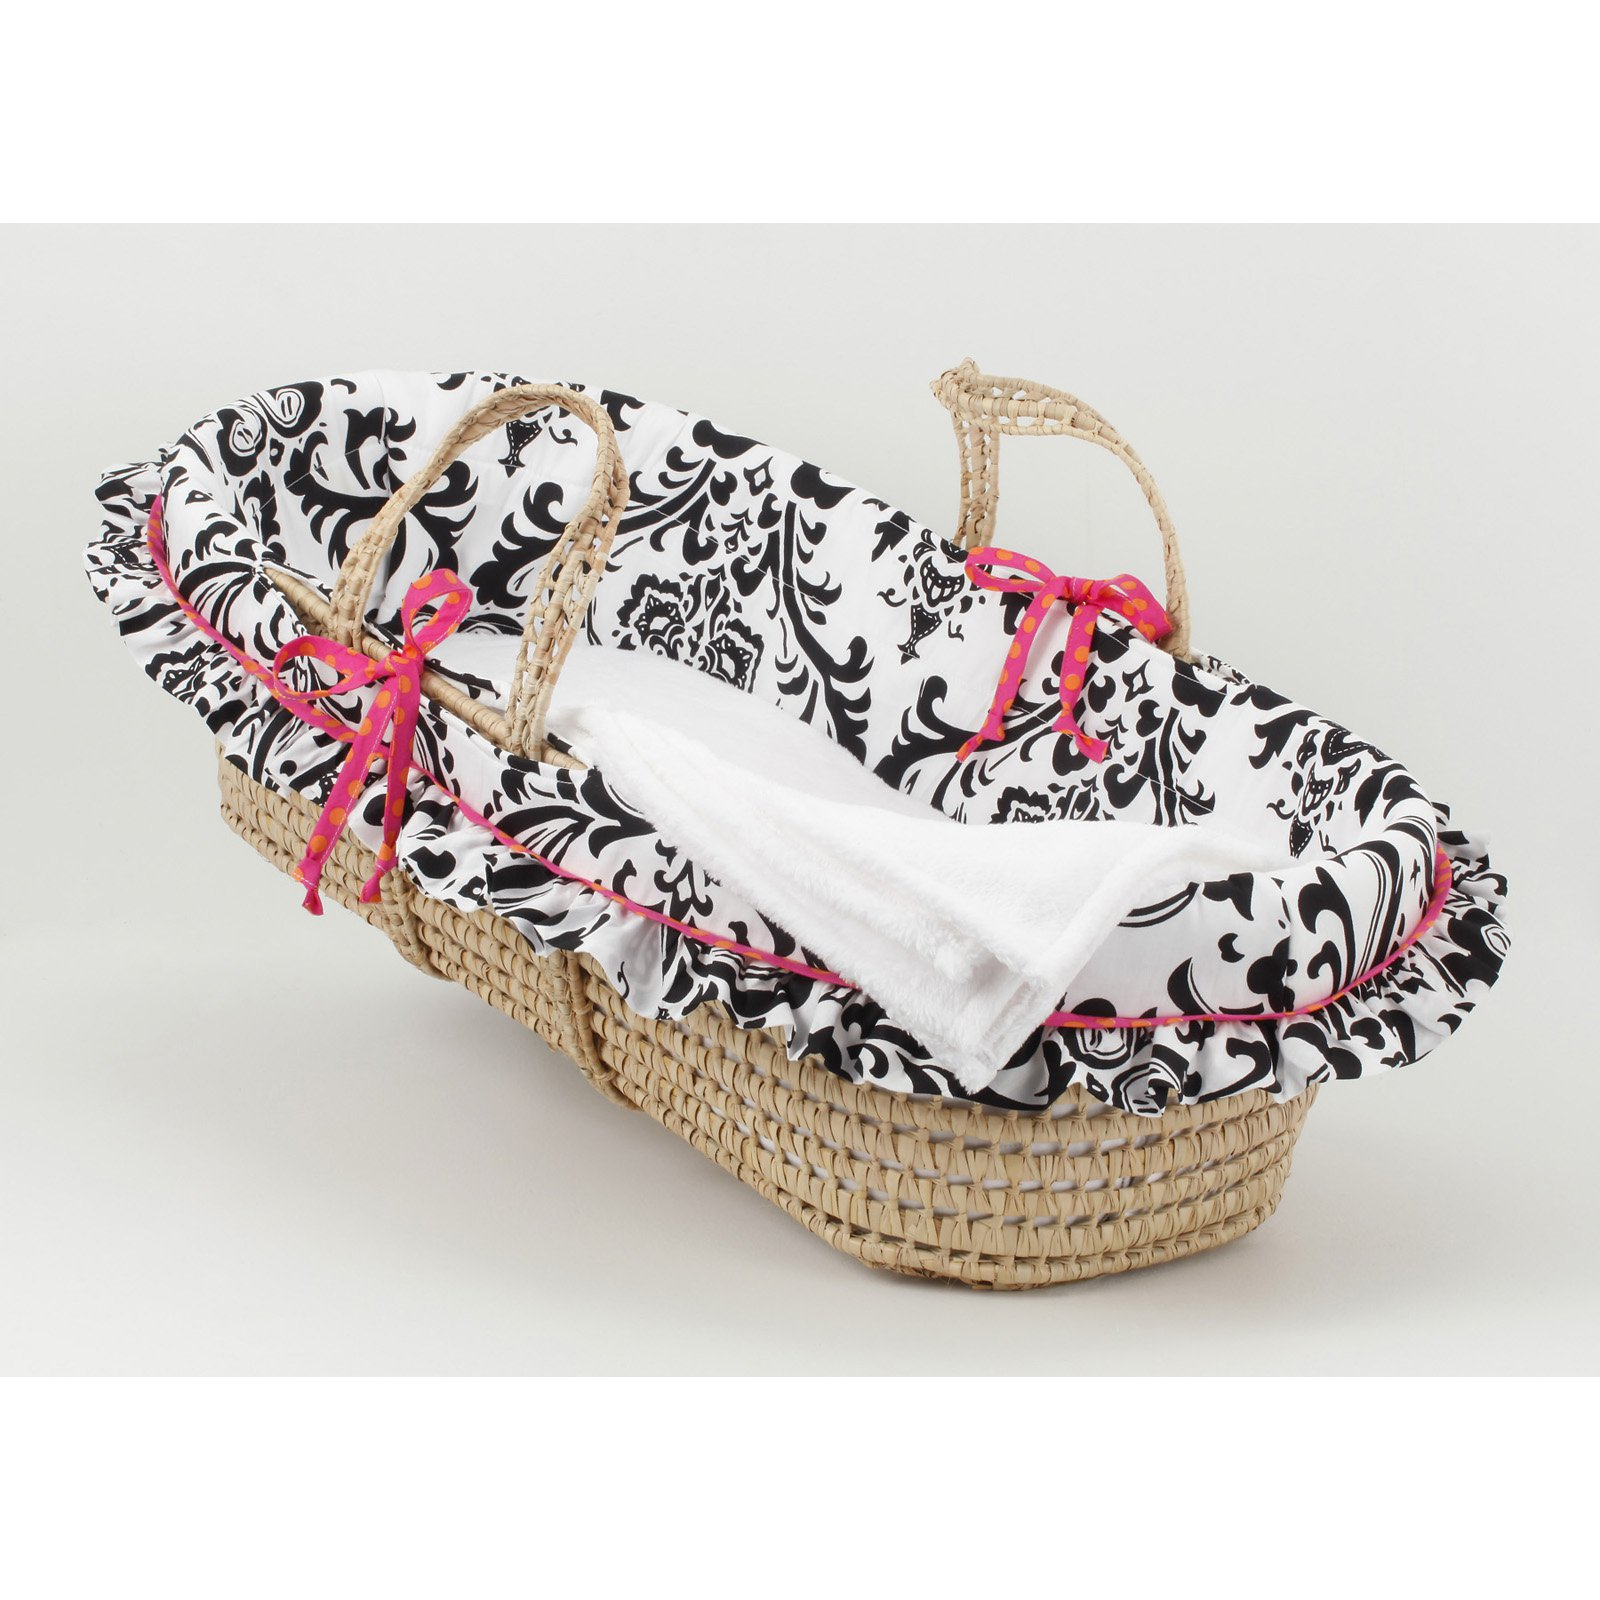 Cotton Tale Designs Girly Moses Basket